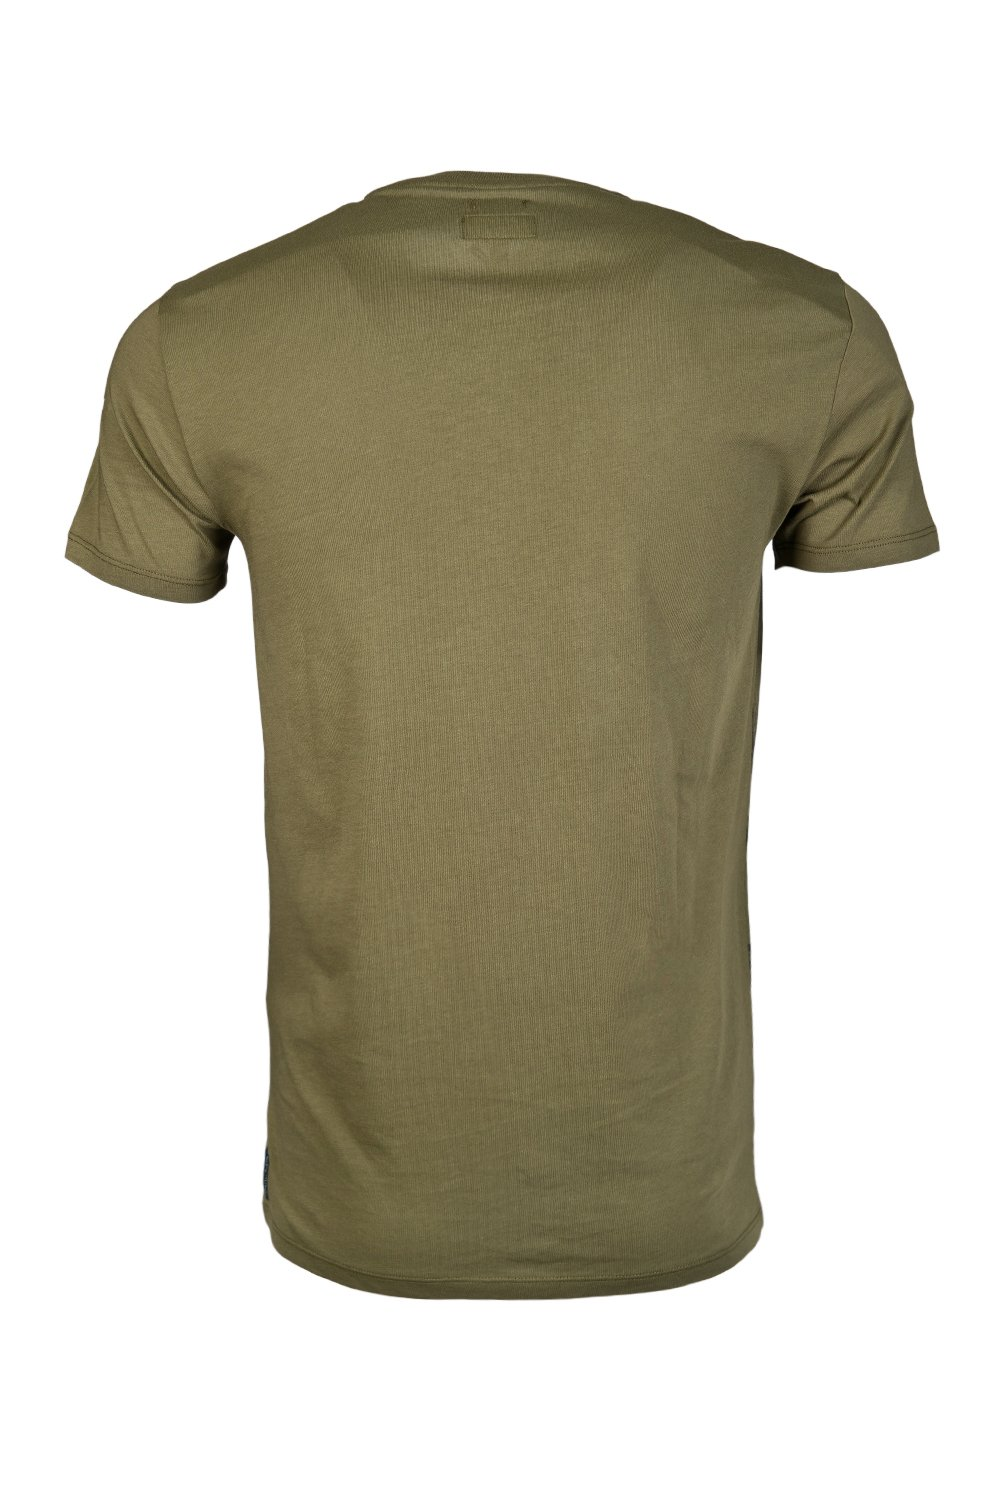 armani jeans round neck t shirt b6h79ul green mens new ebay. Black Bedroom Furniture Sets. Home Design Ideas